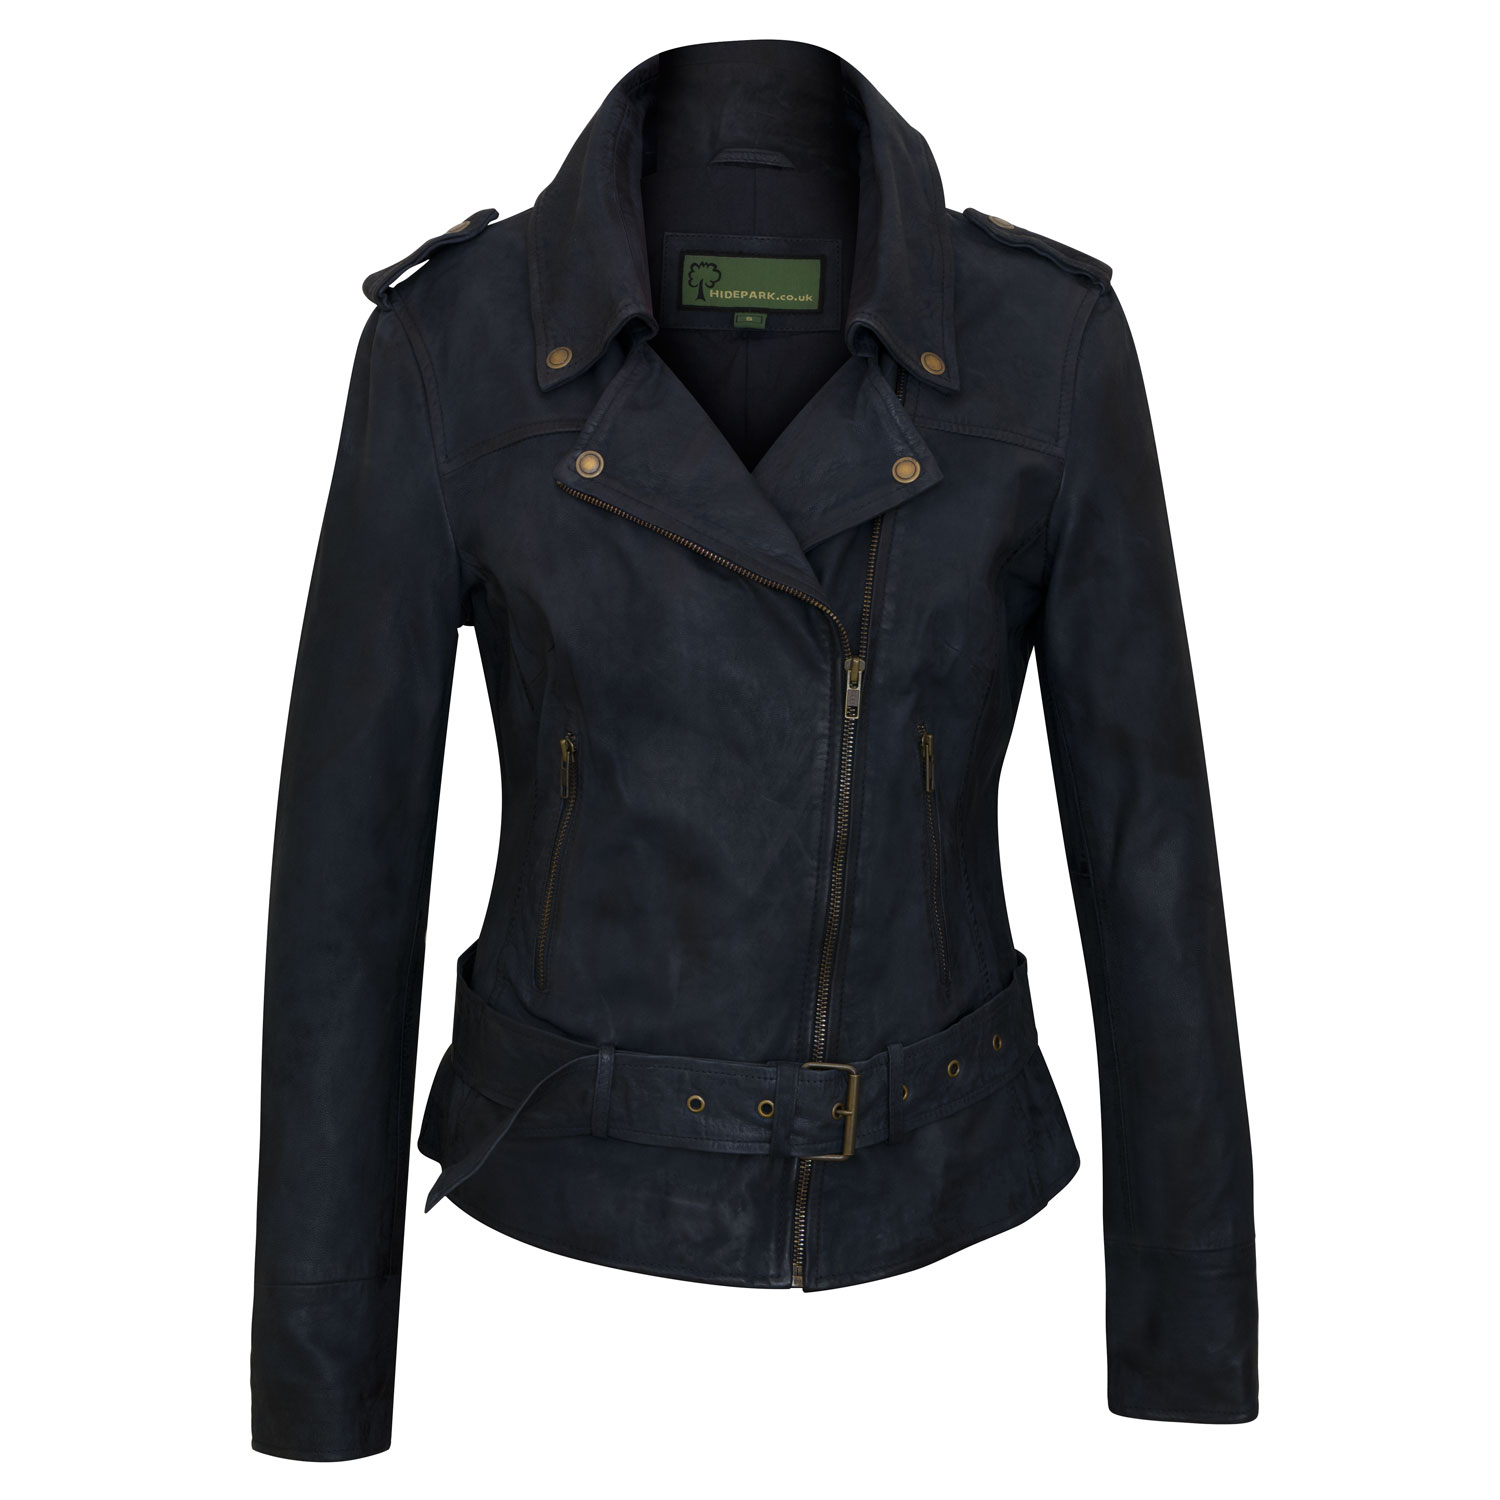 Women's Navy Leather Biker Jacket: Zoe